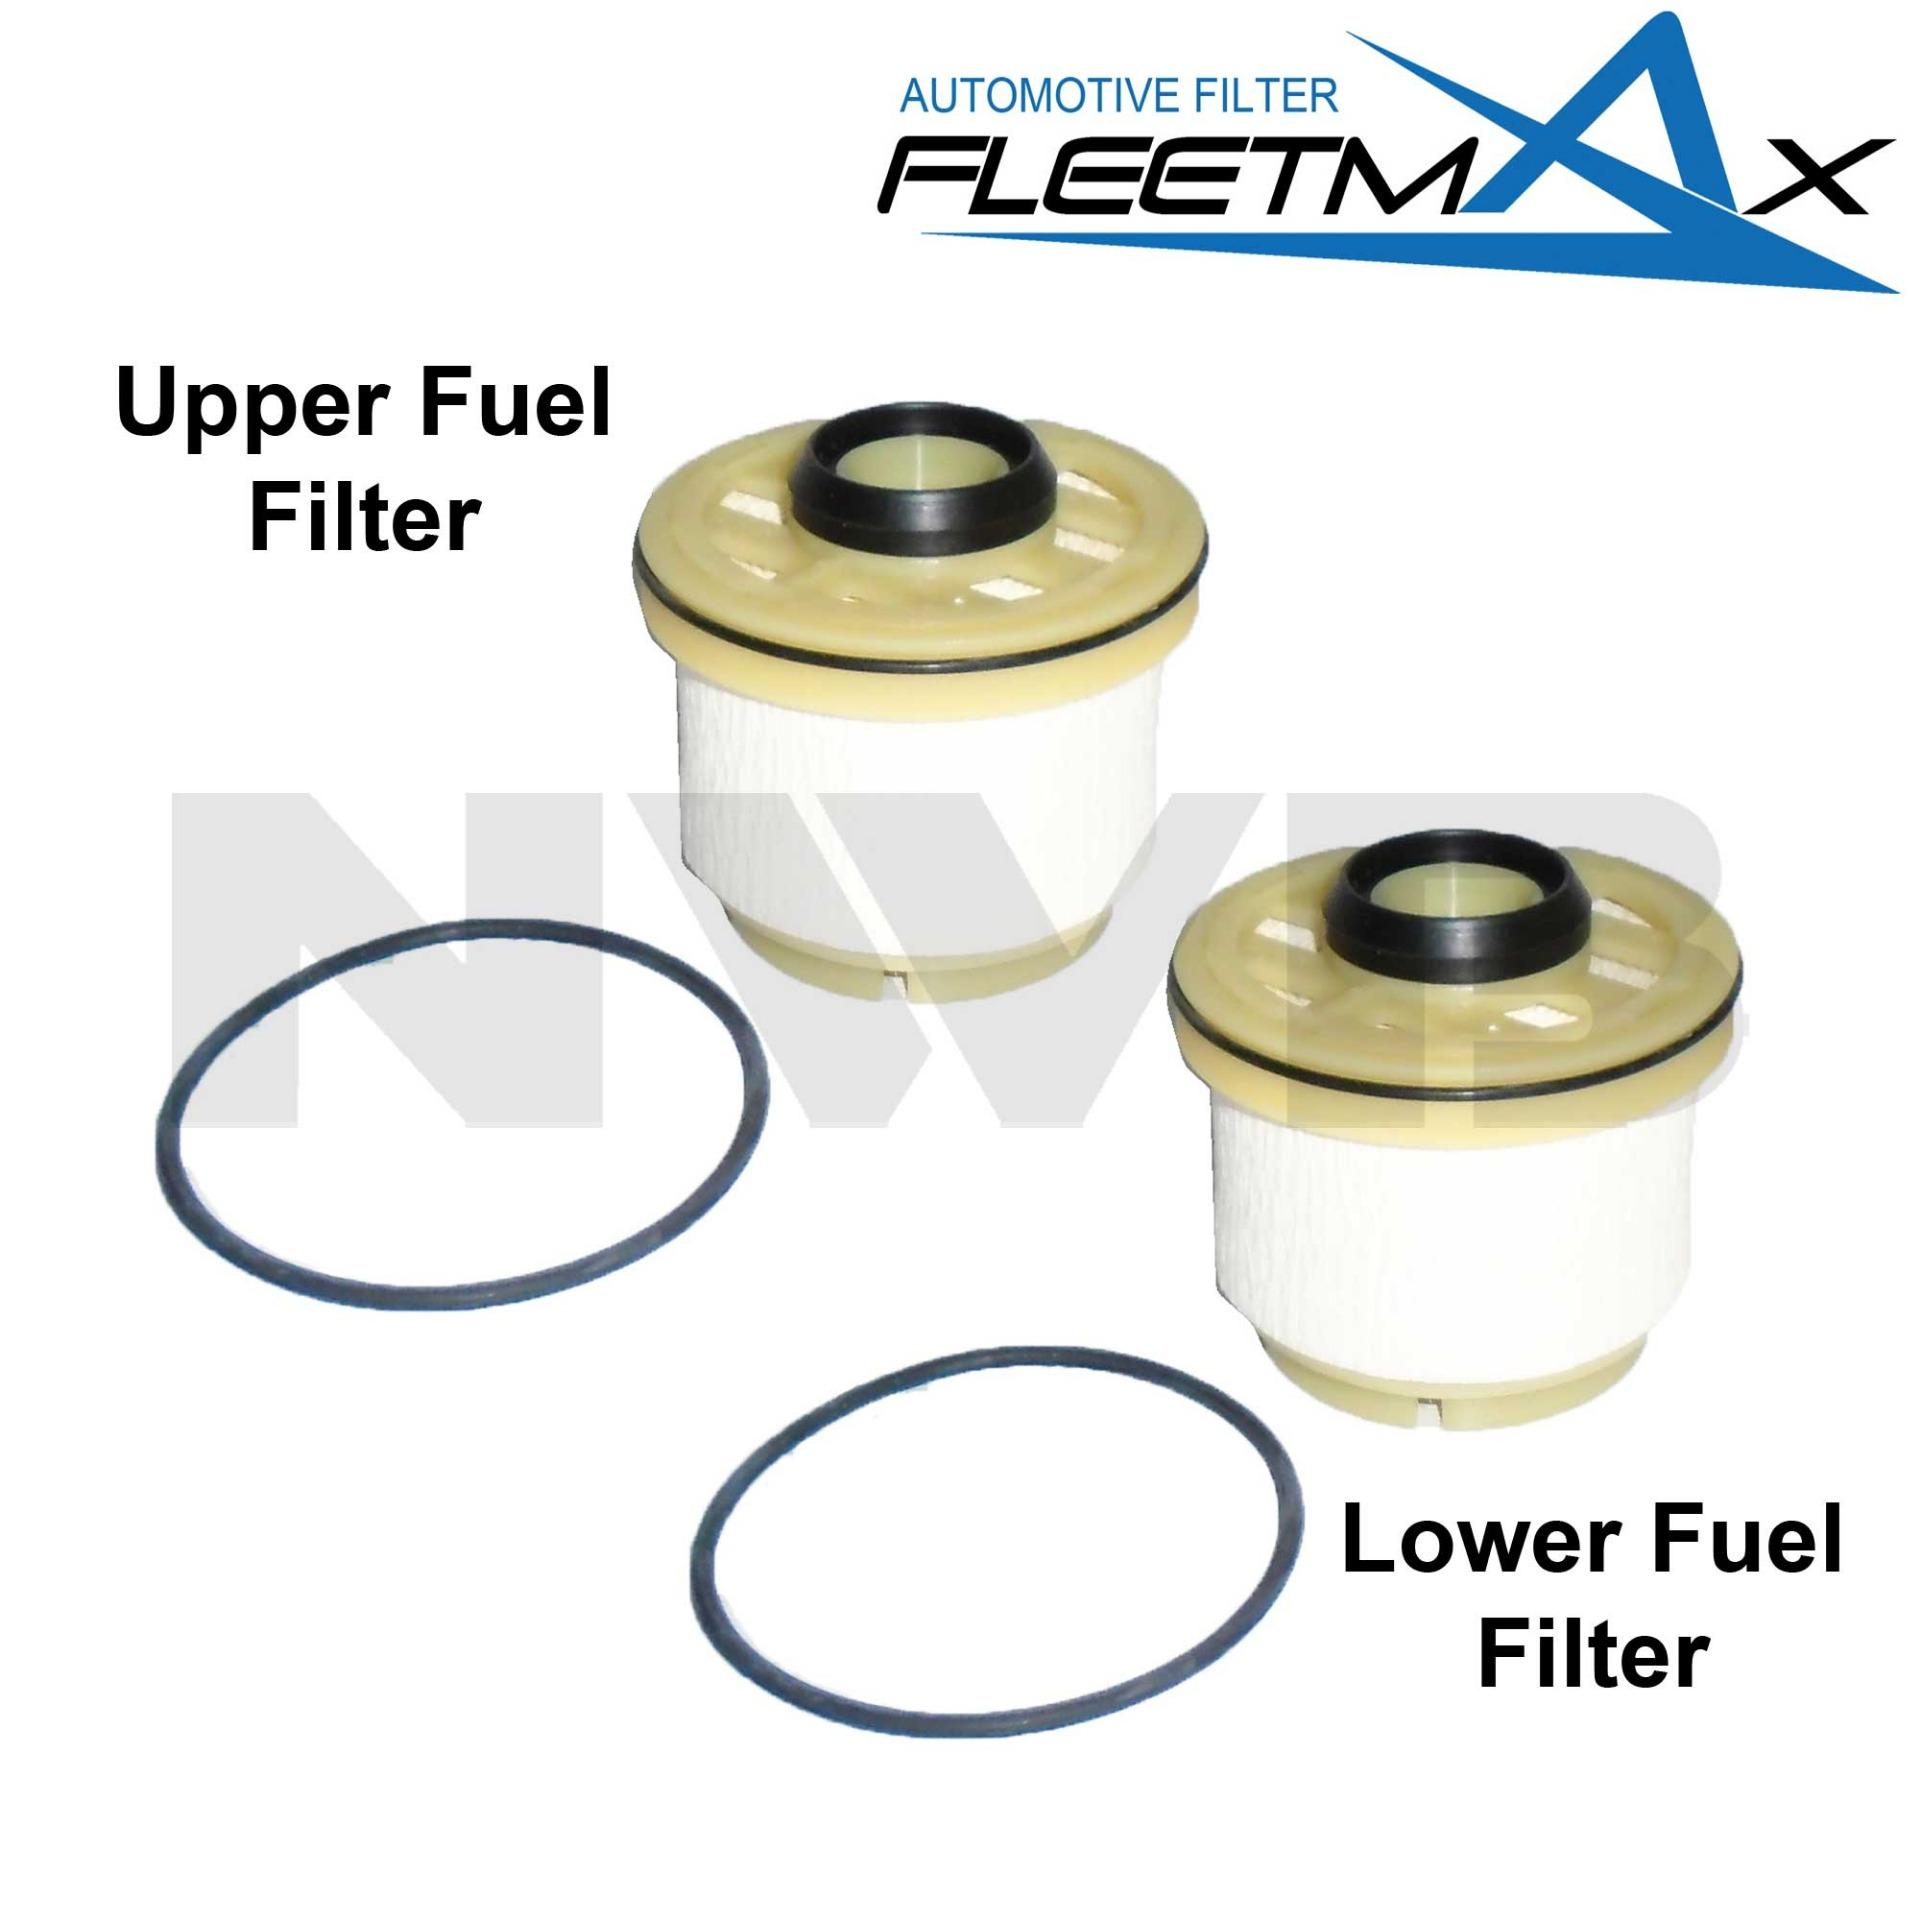 Fuel Filter For Sale Gas Online Brands Prices Reviews In 2003 Mazda 6 Fleetmax Isuzu Mu X 2014 2016 Upper And Lower